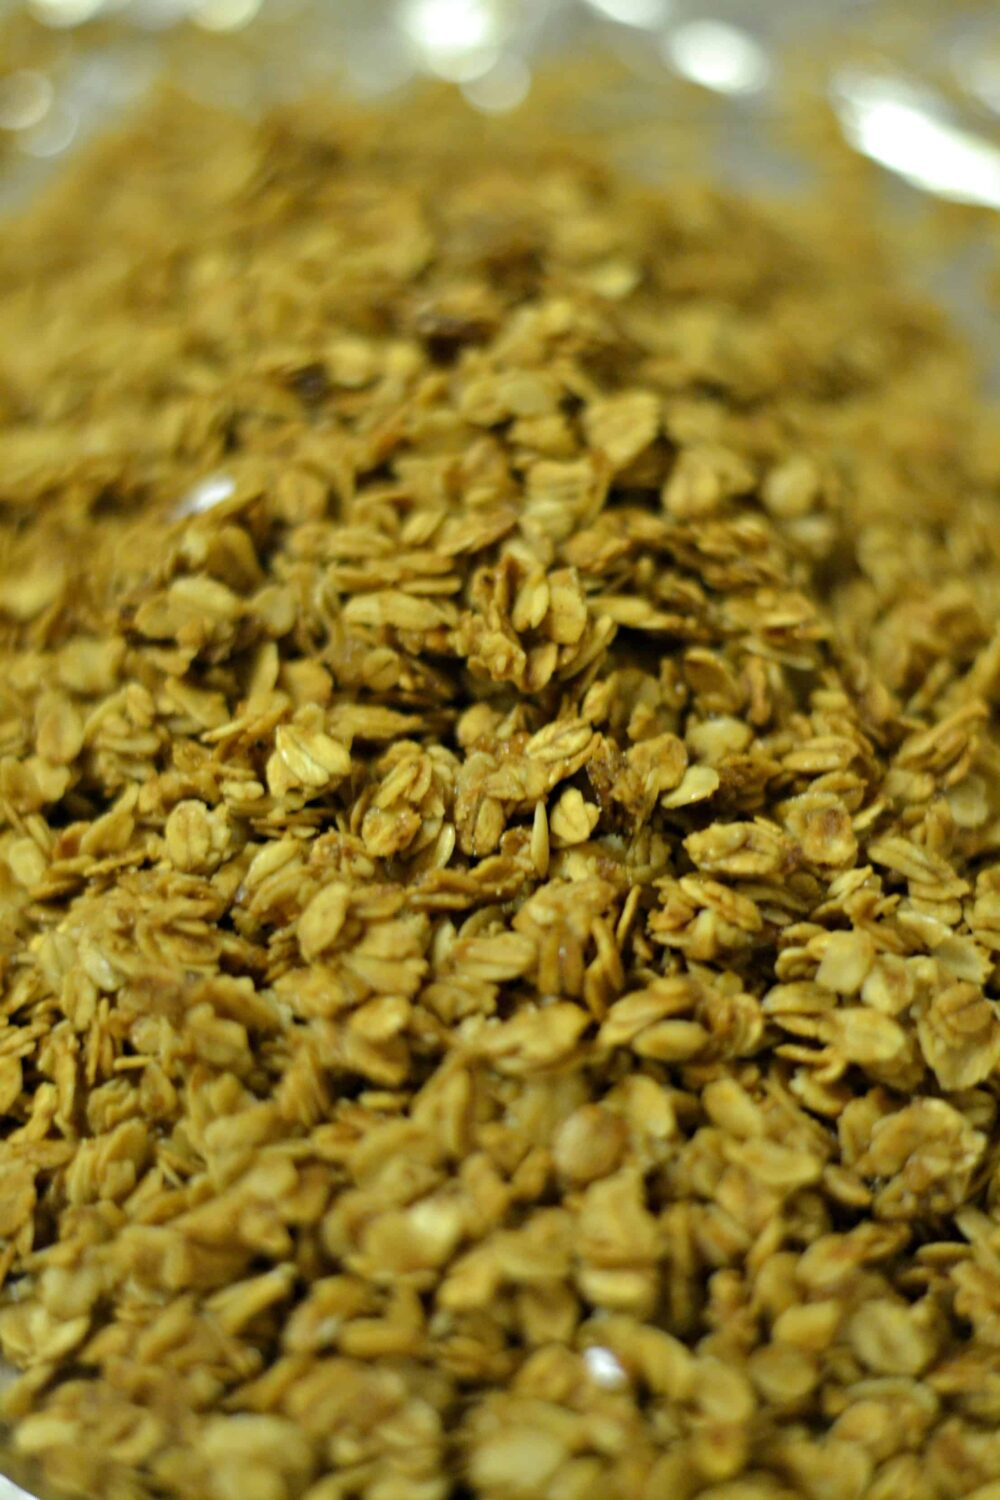 Short on time and need an easy granola recipe? This one uses items that are right in your pantry!